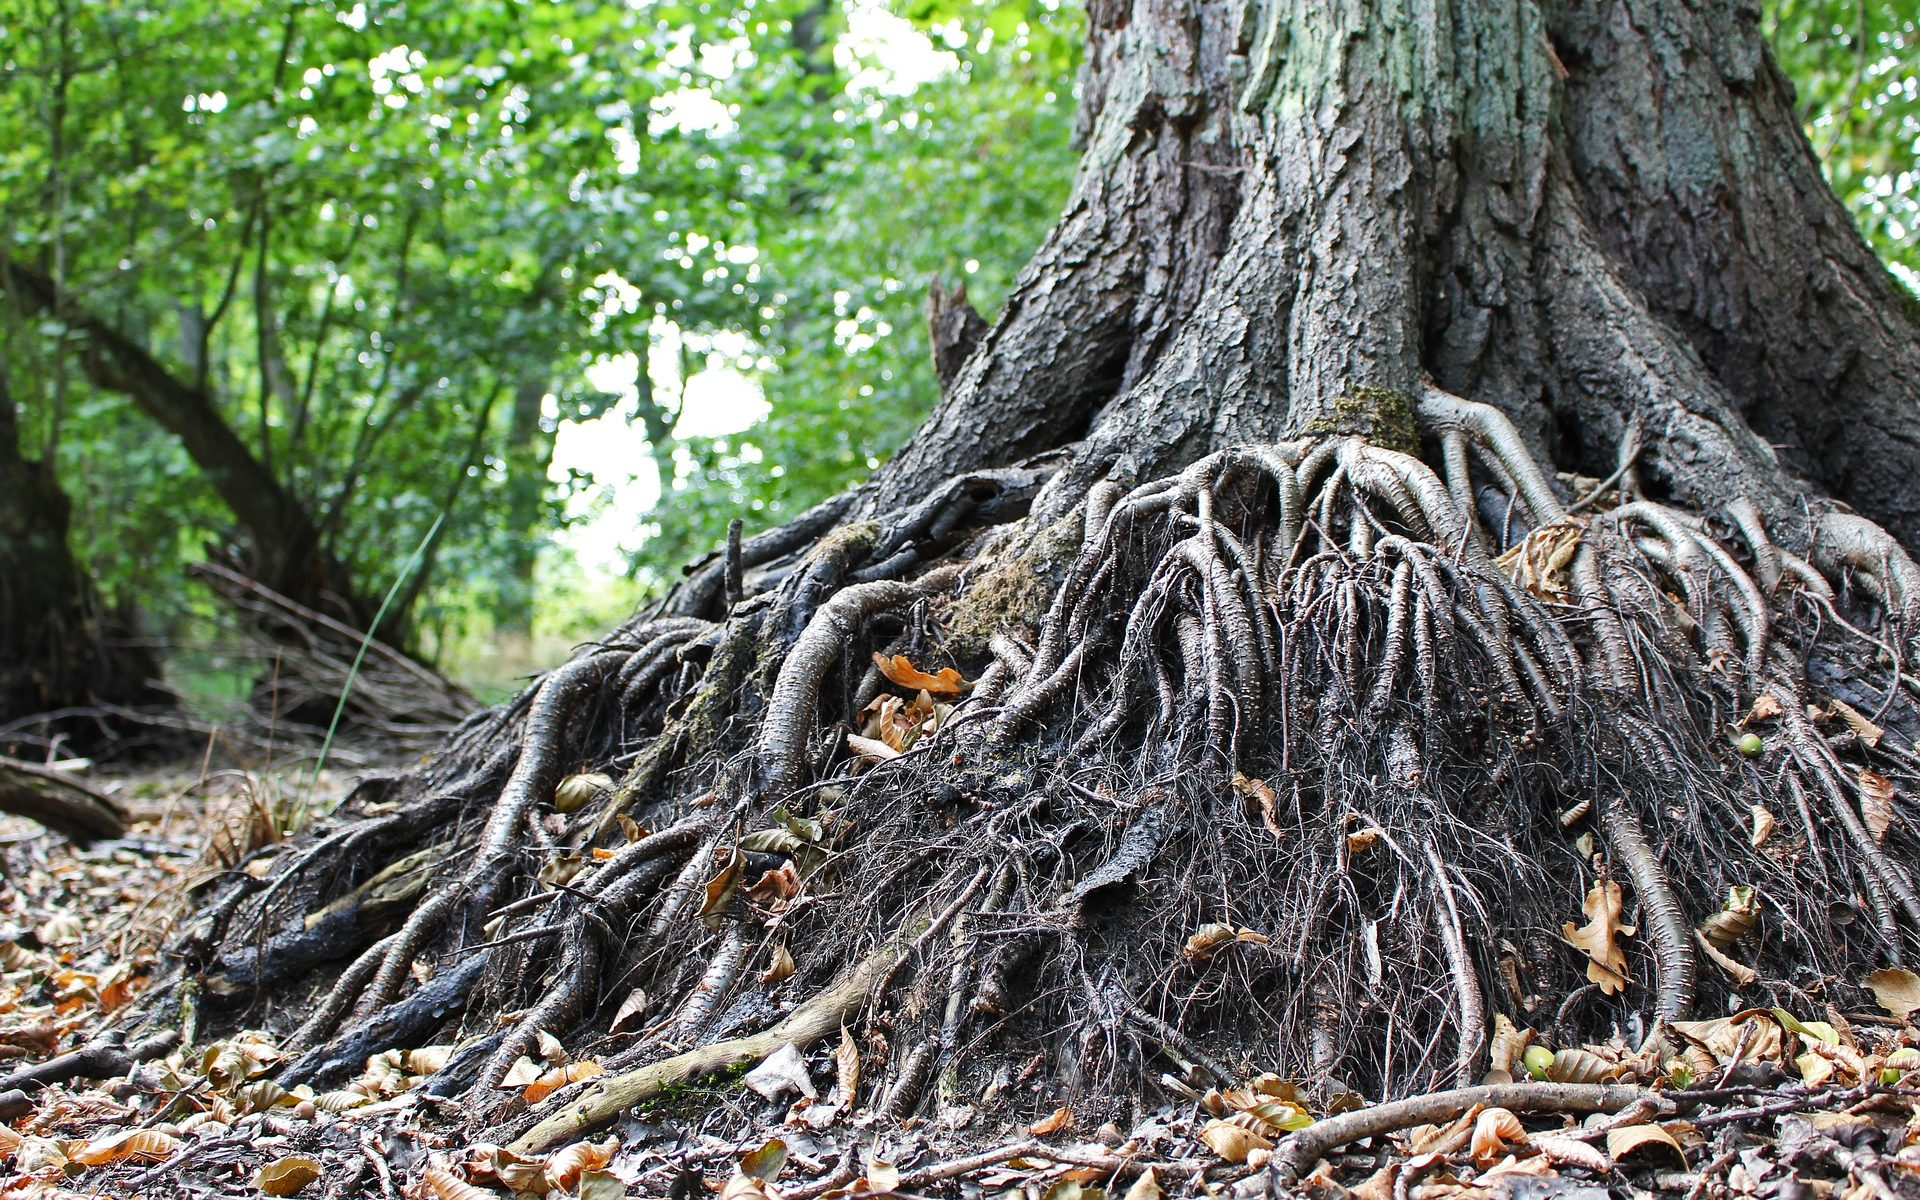 The base of an old tree, a tanlge of roots and fallen leaves